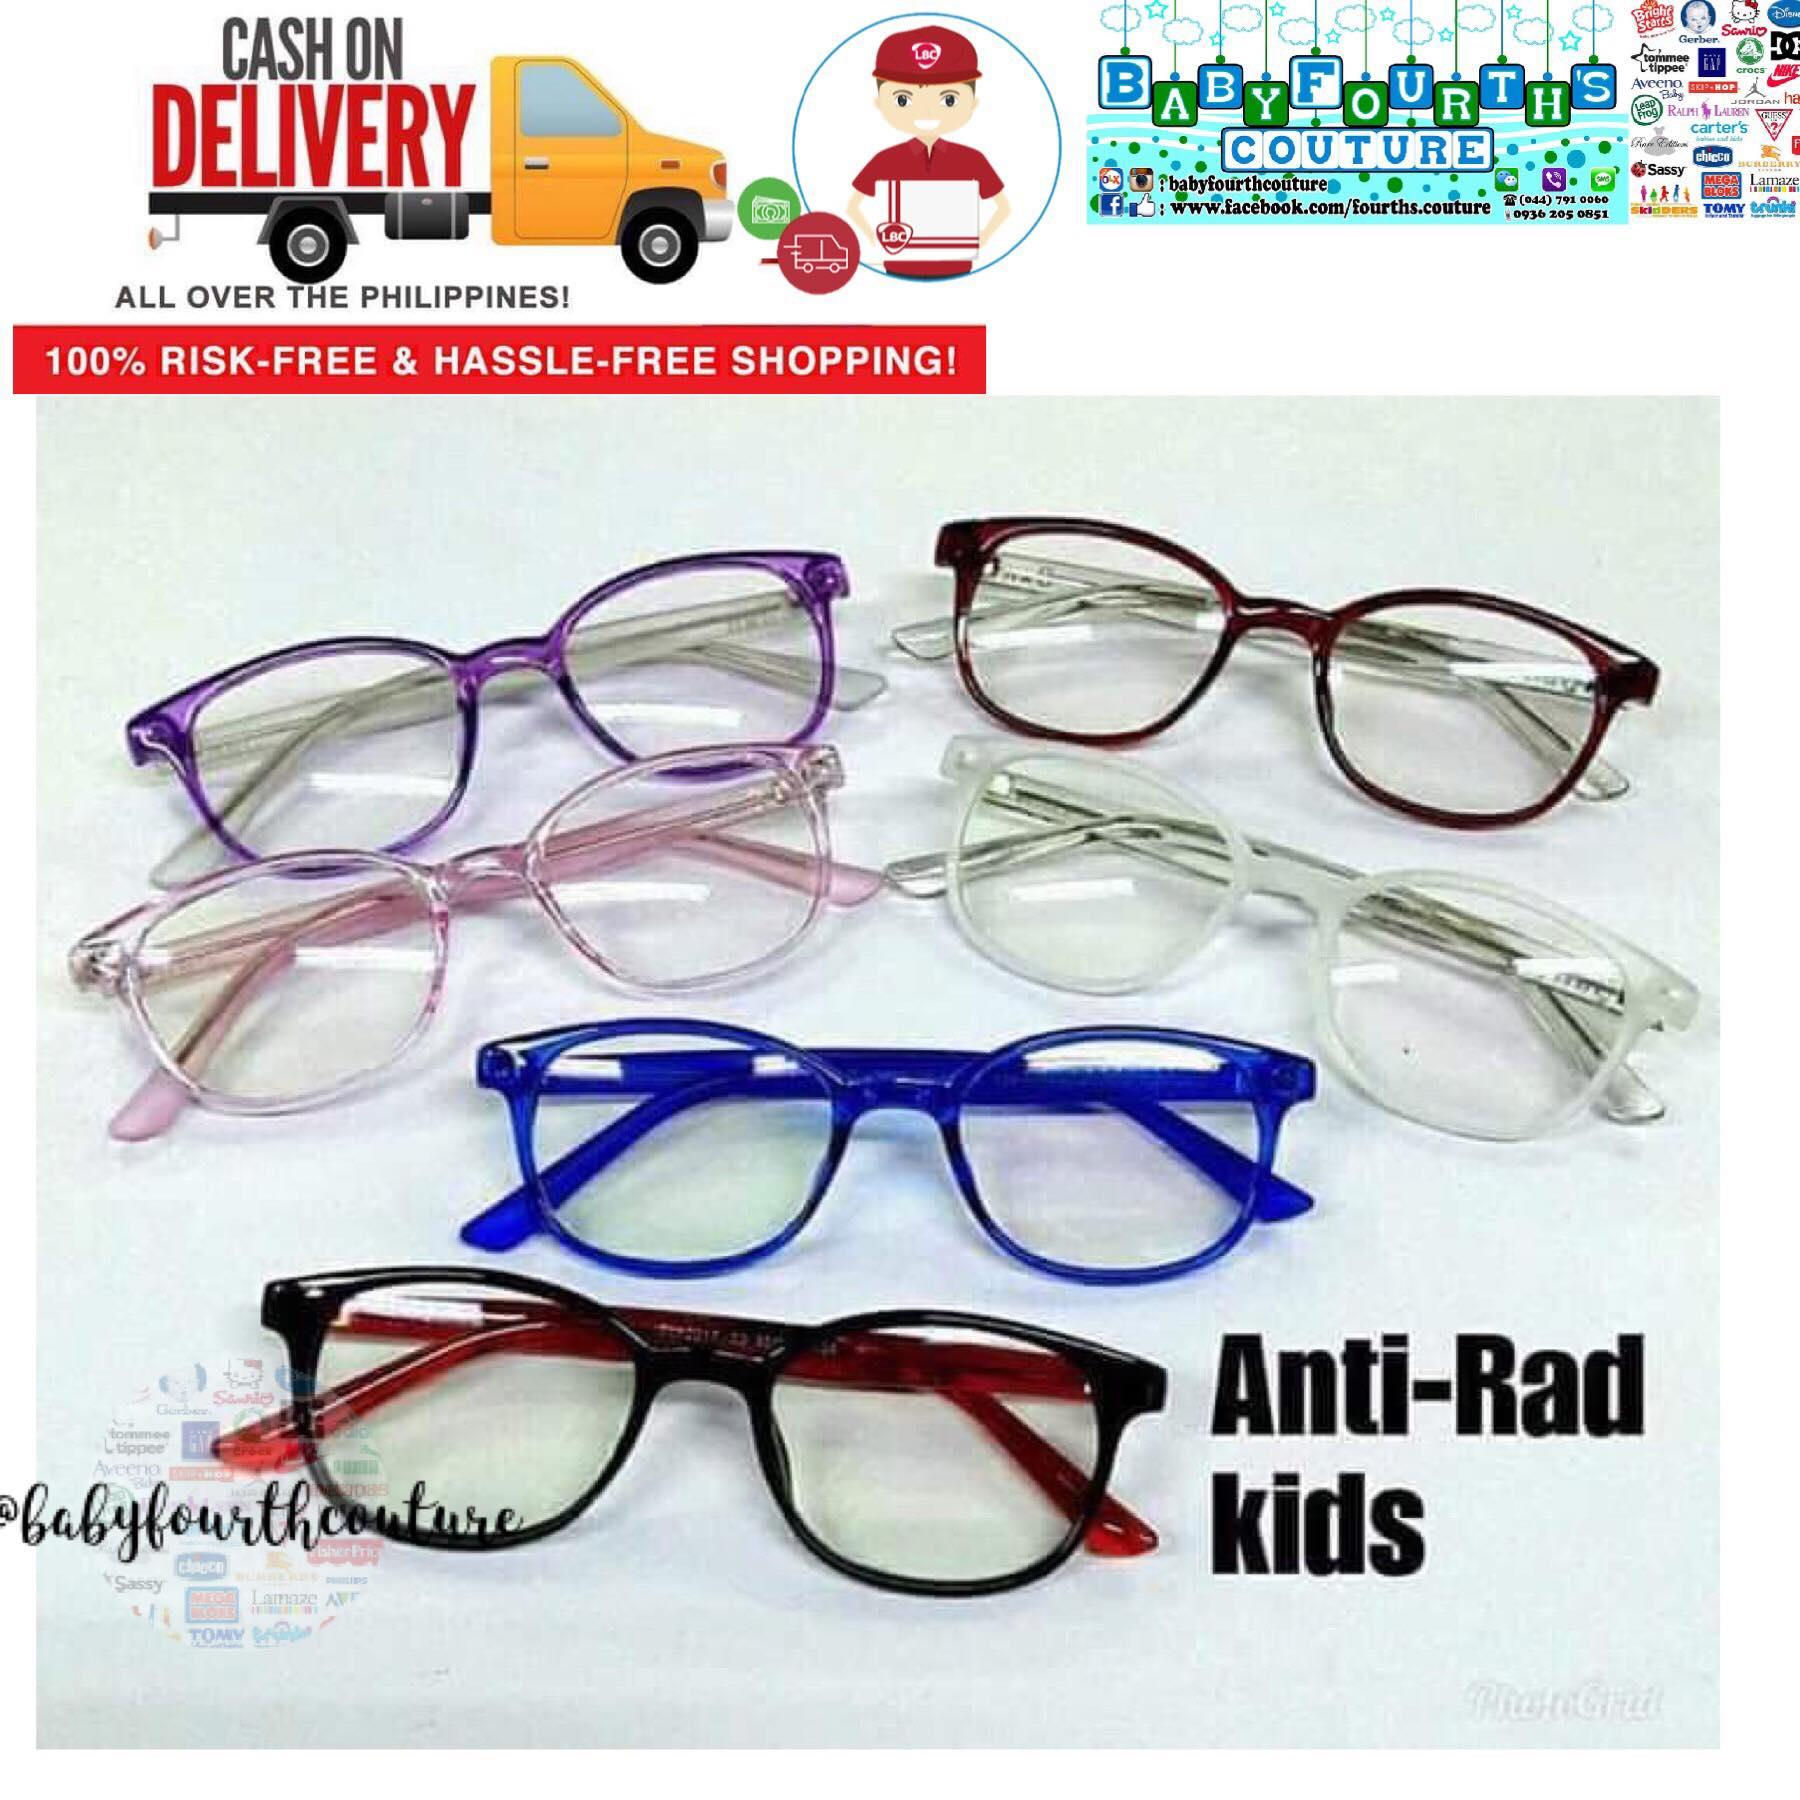 Kids Fashionable Round Anti Radiation (gadgets) Eyewear By Baby Fourth Couture.